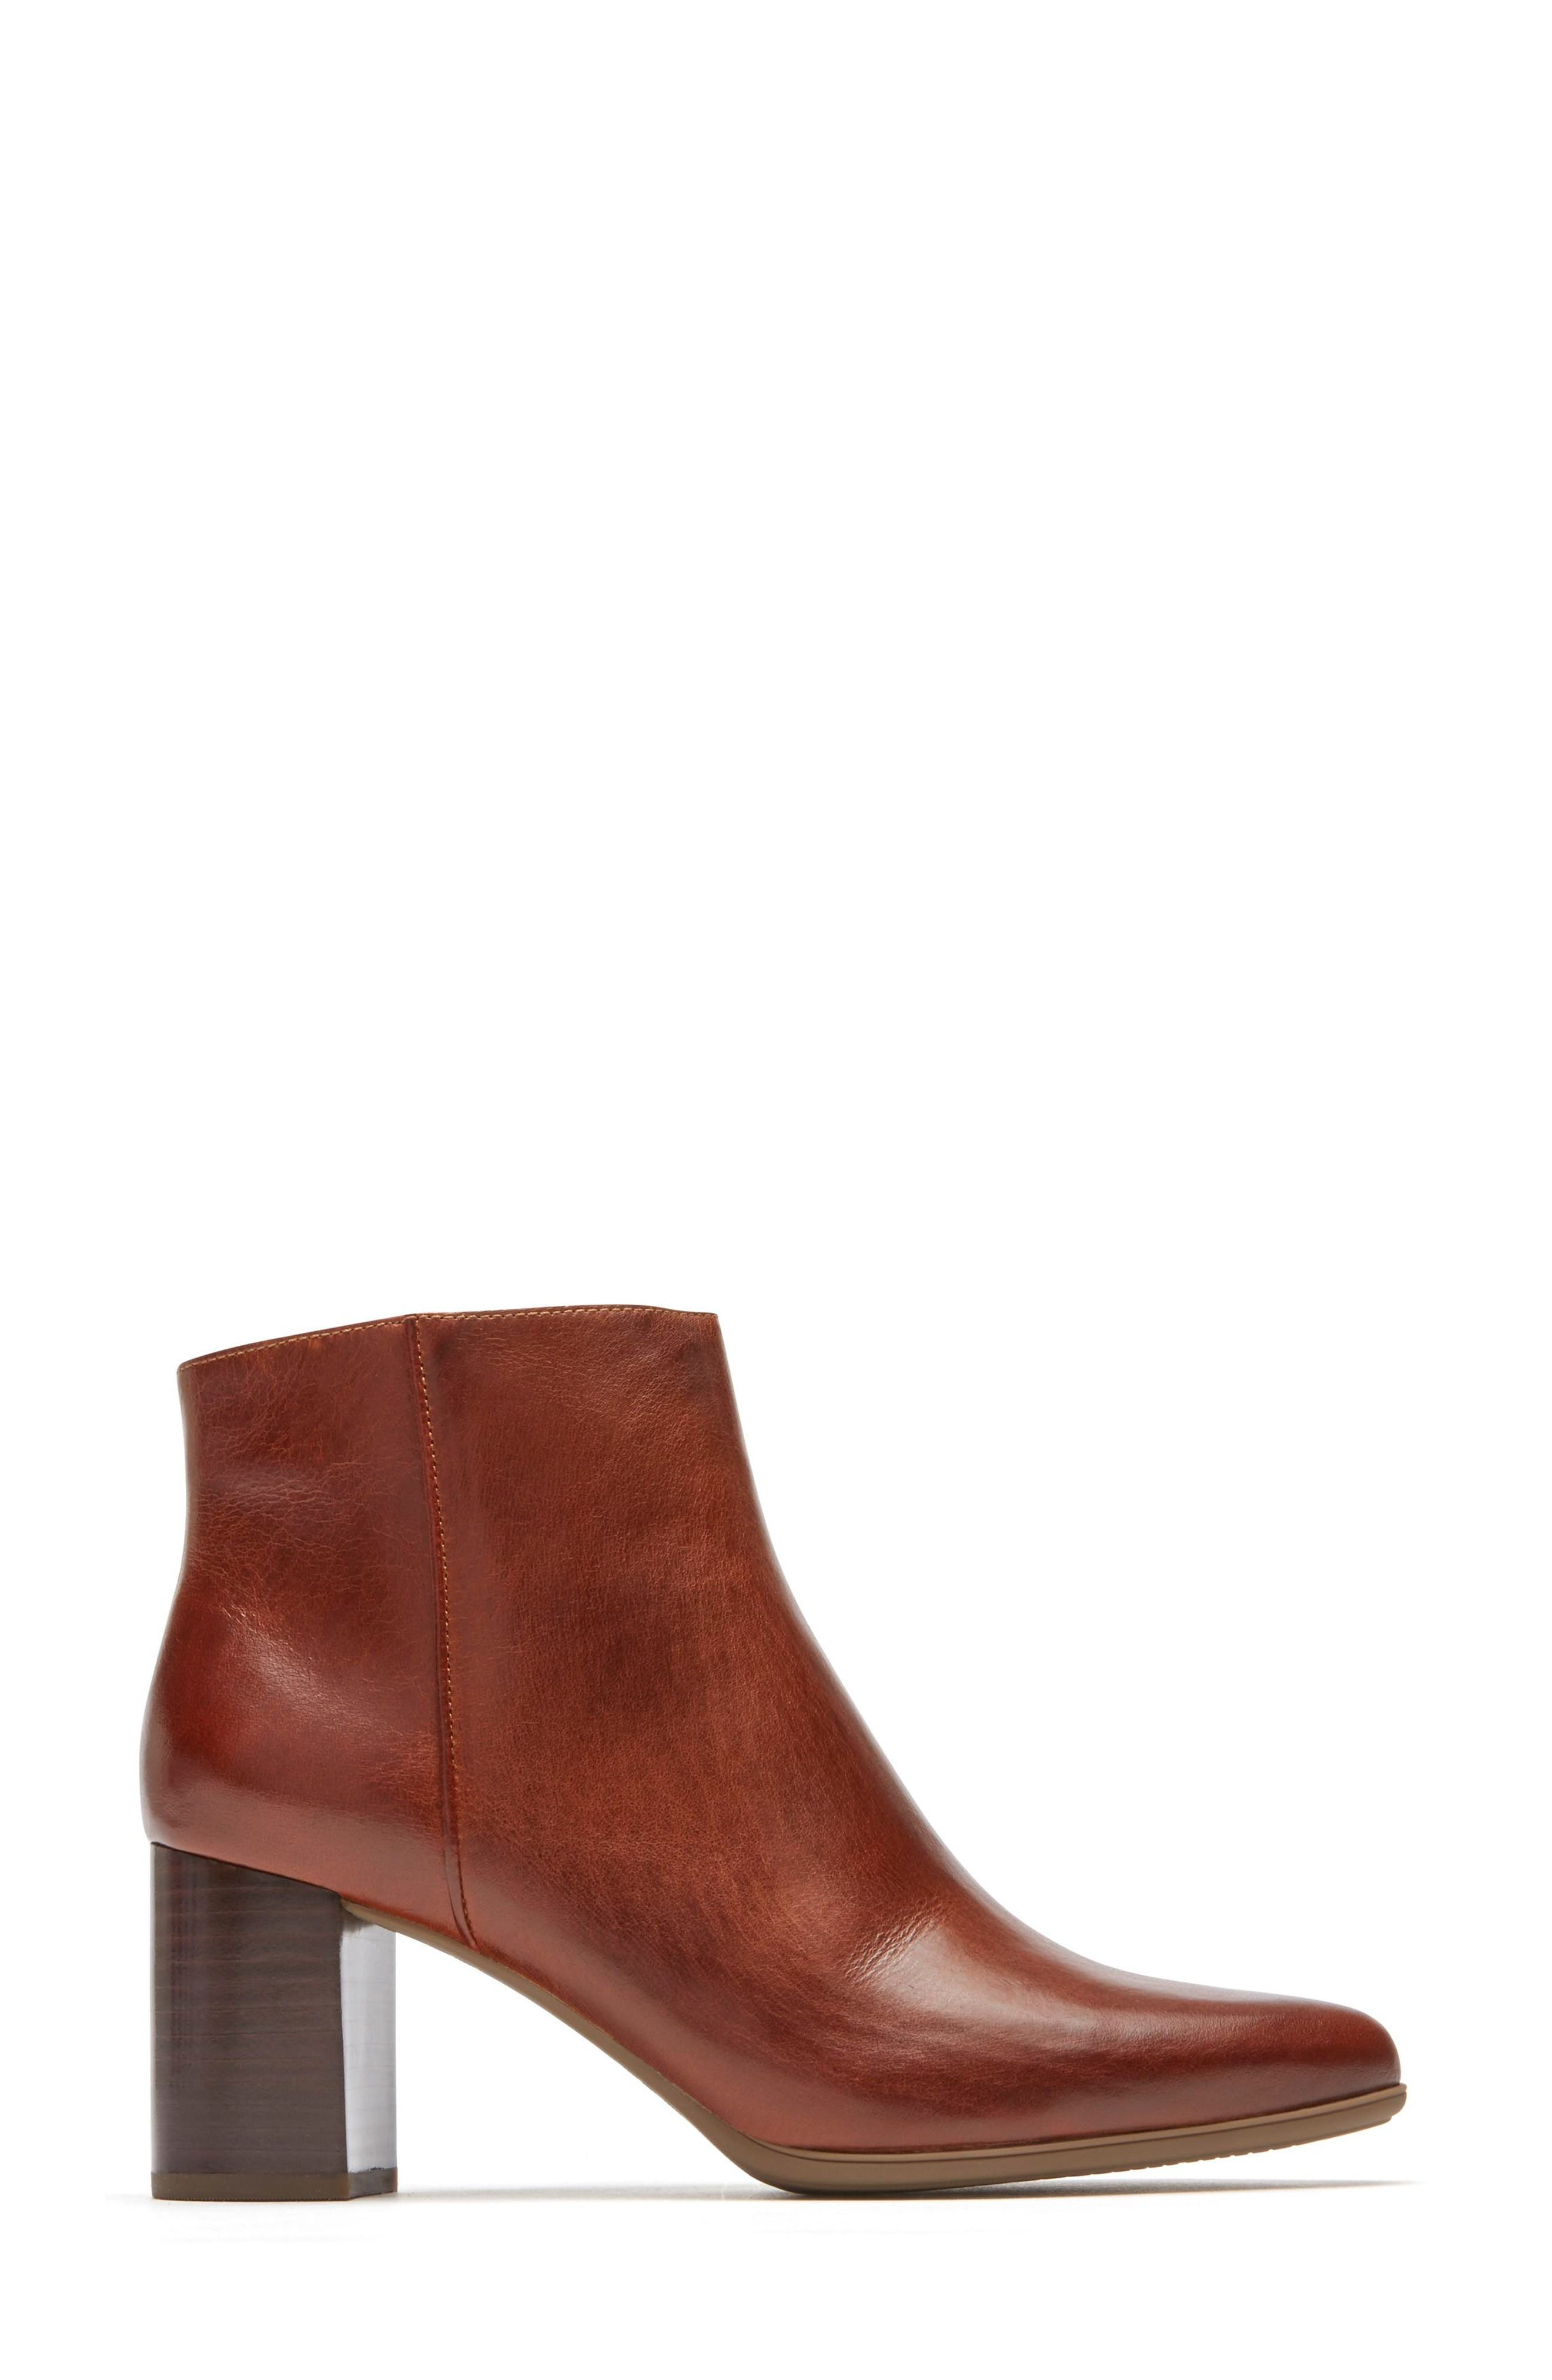 Lynix Luxe Bootie,                             Alternate thumbnail 3, color,                             Saddle Leather